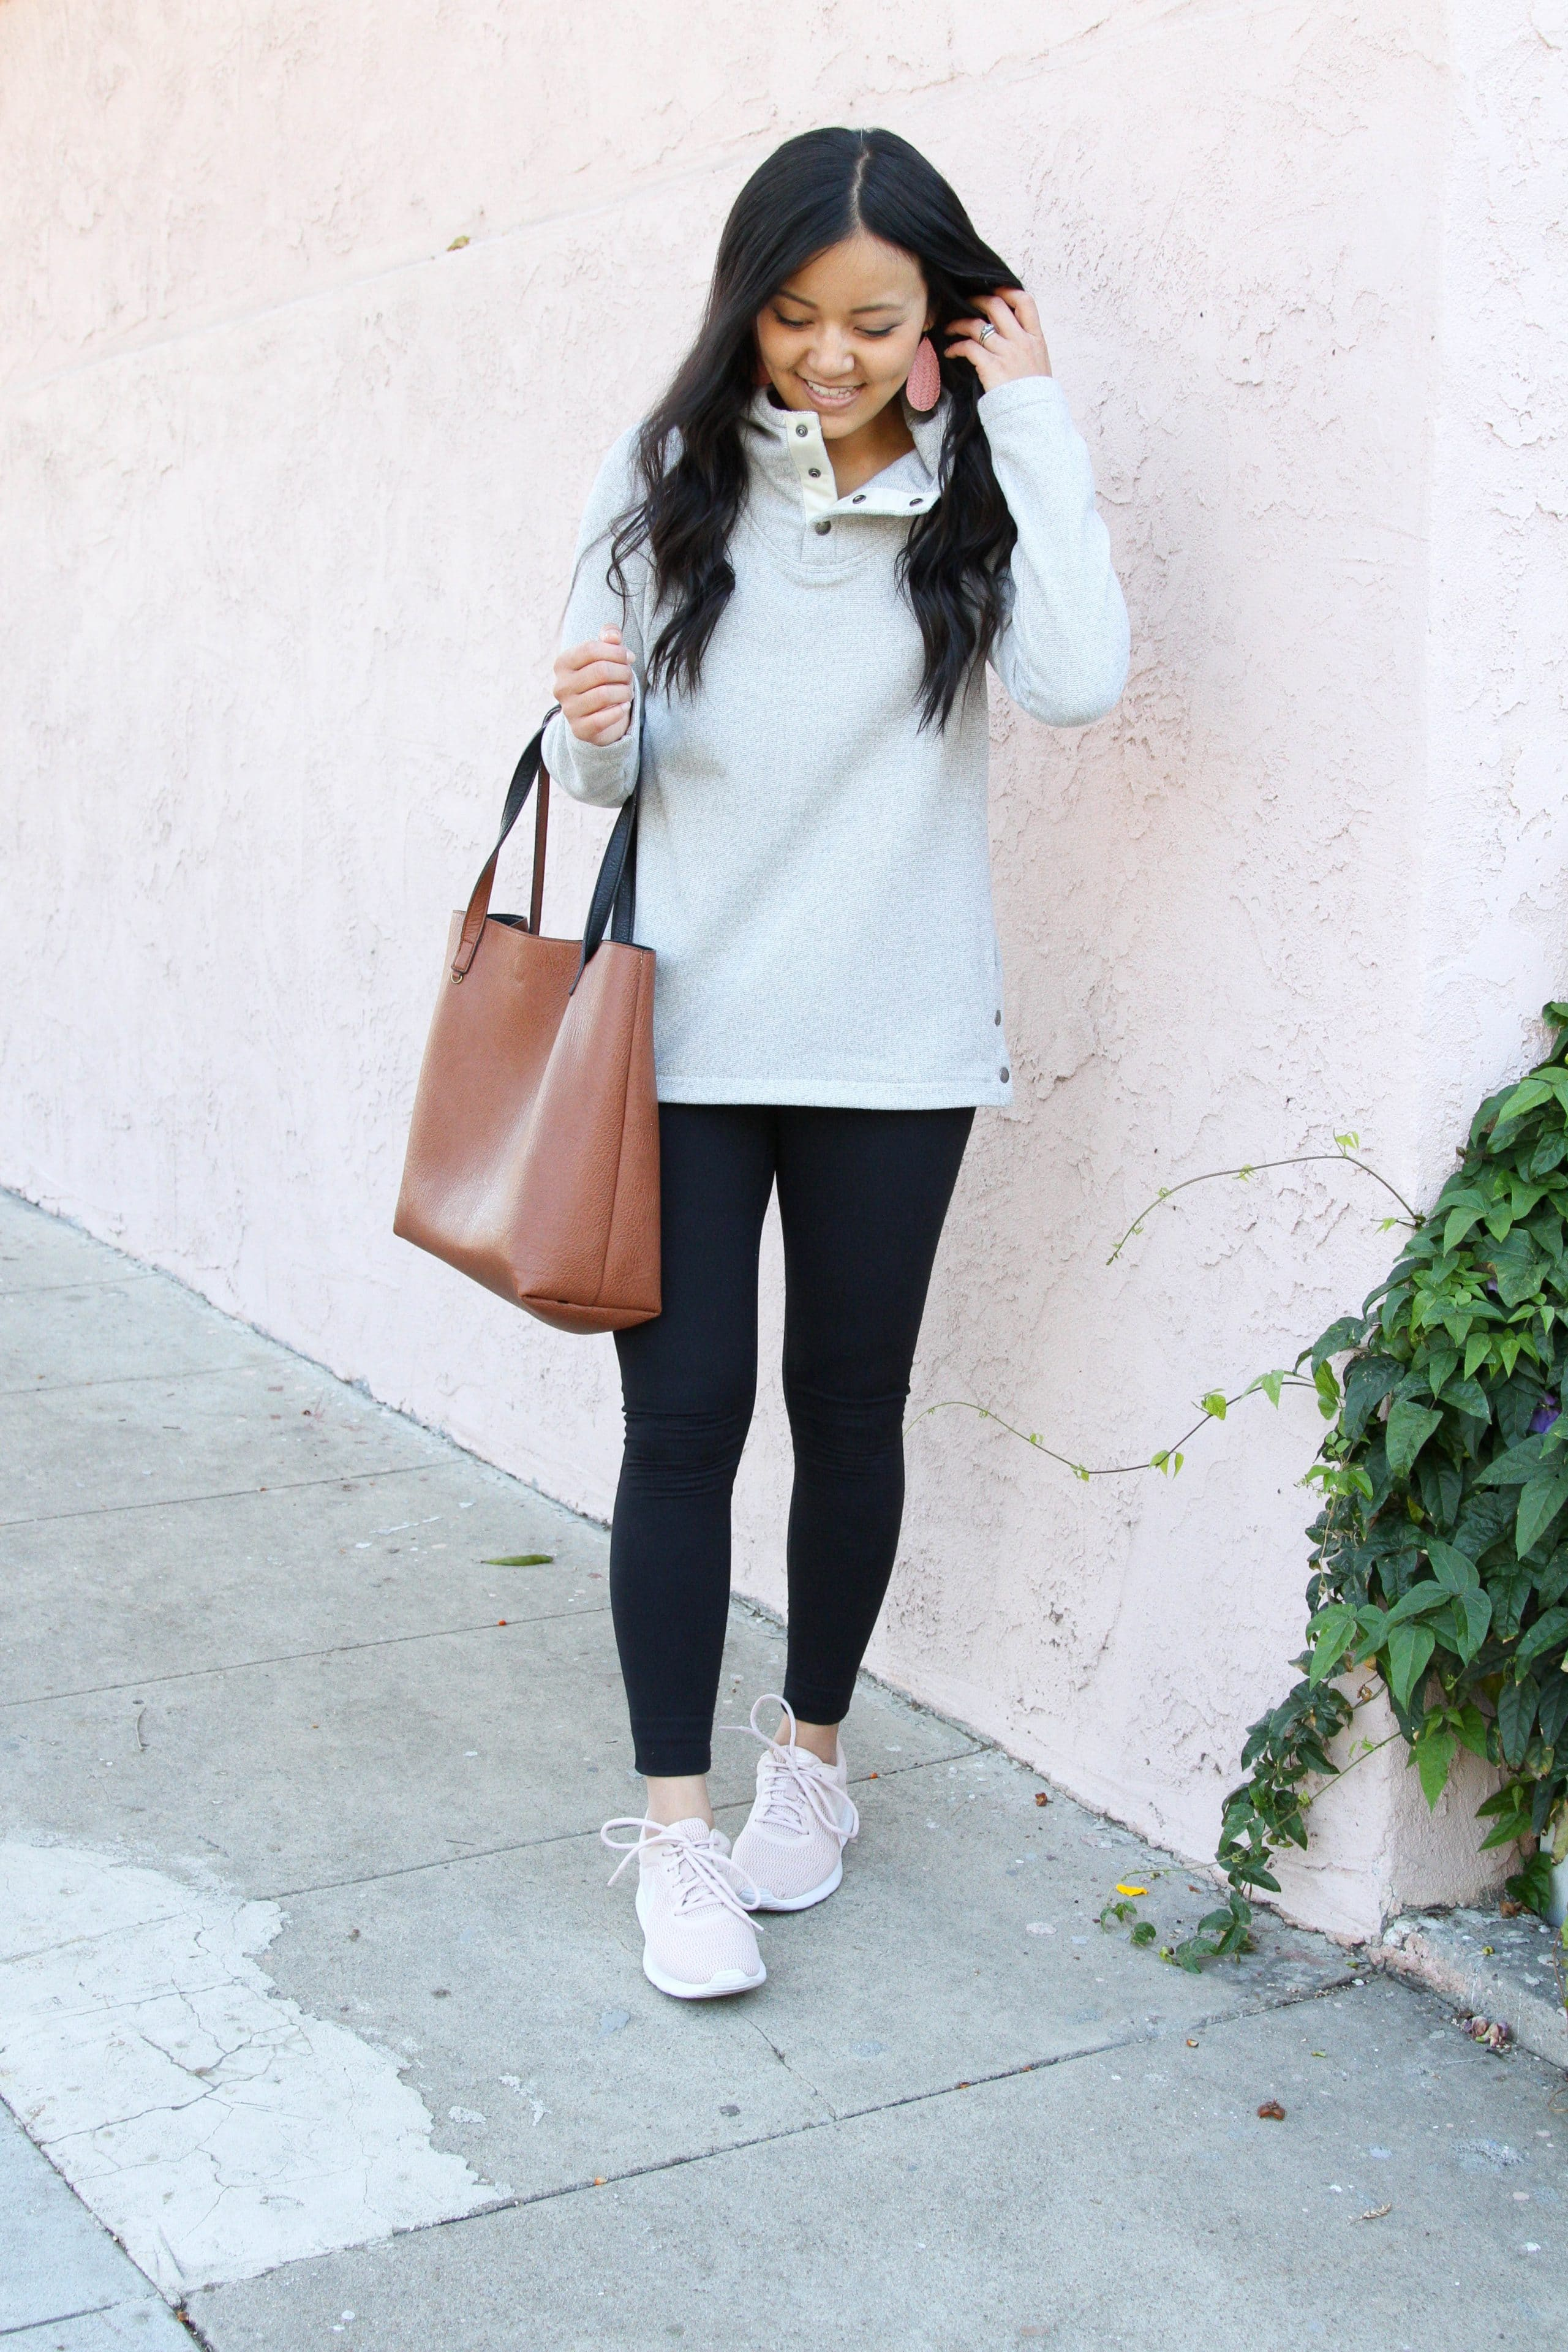 grey fleece + black leggings + pink sneakers + brown tote